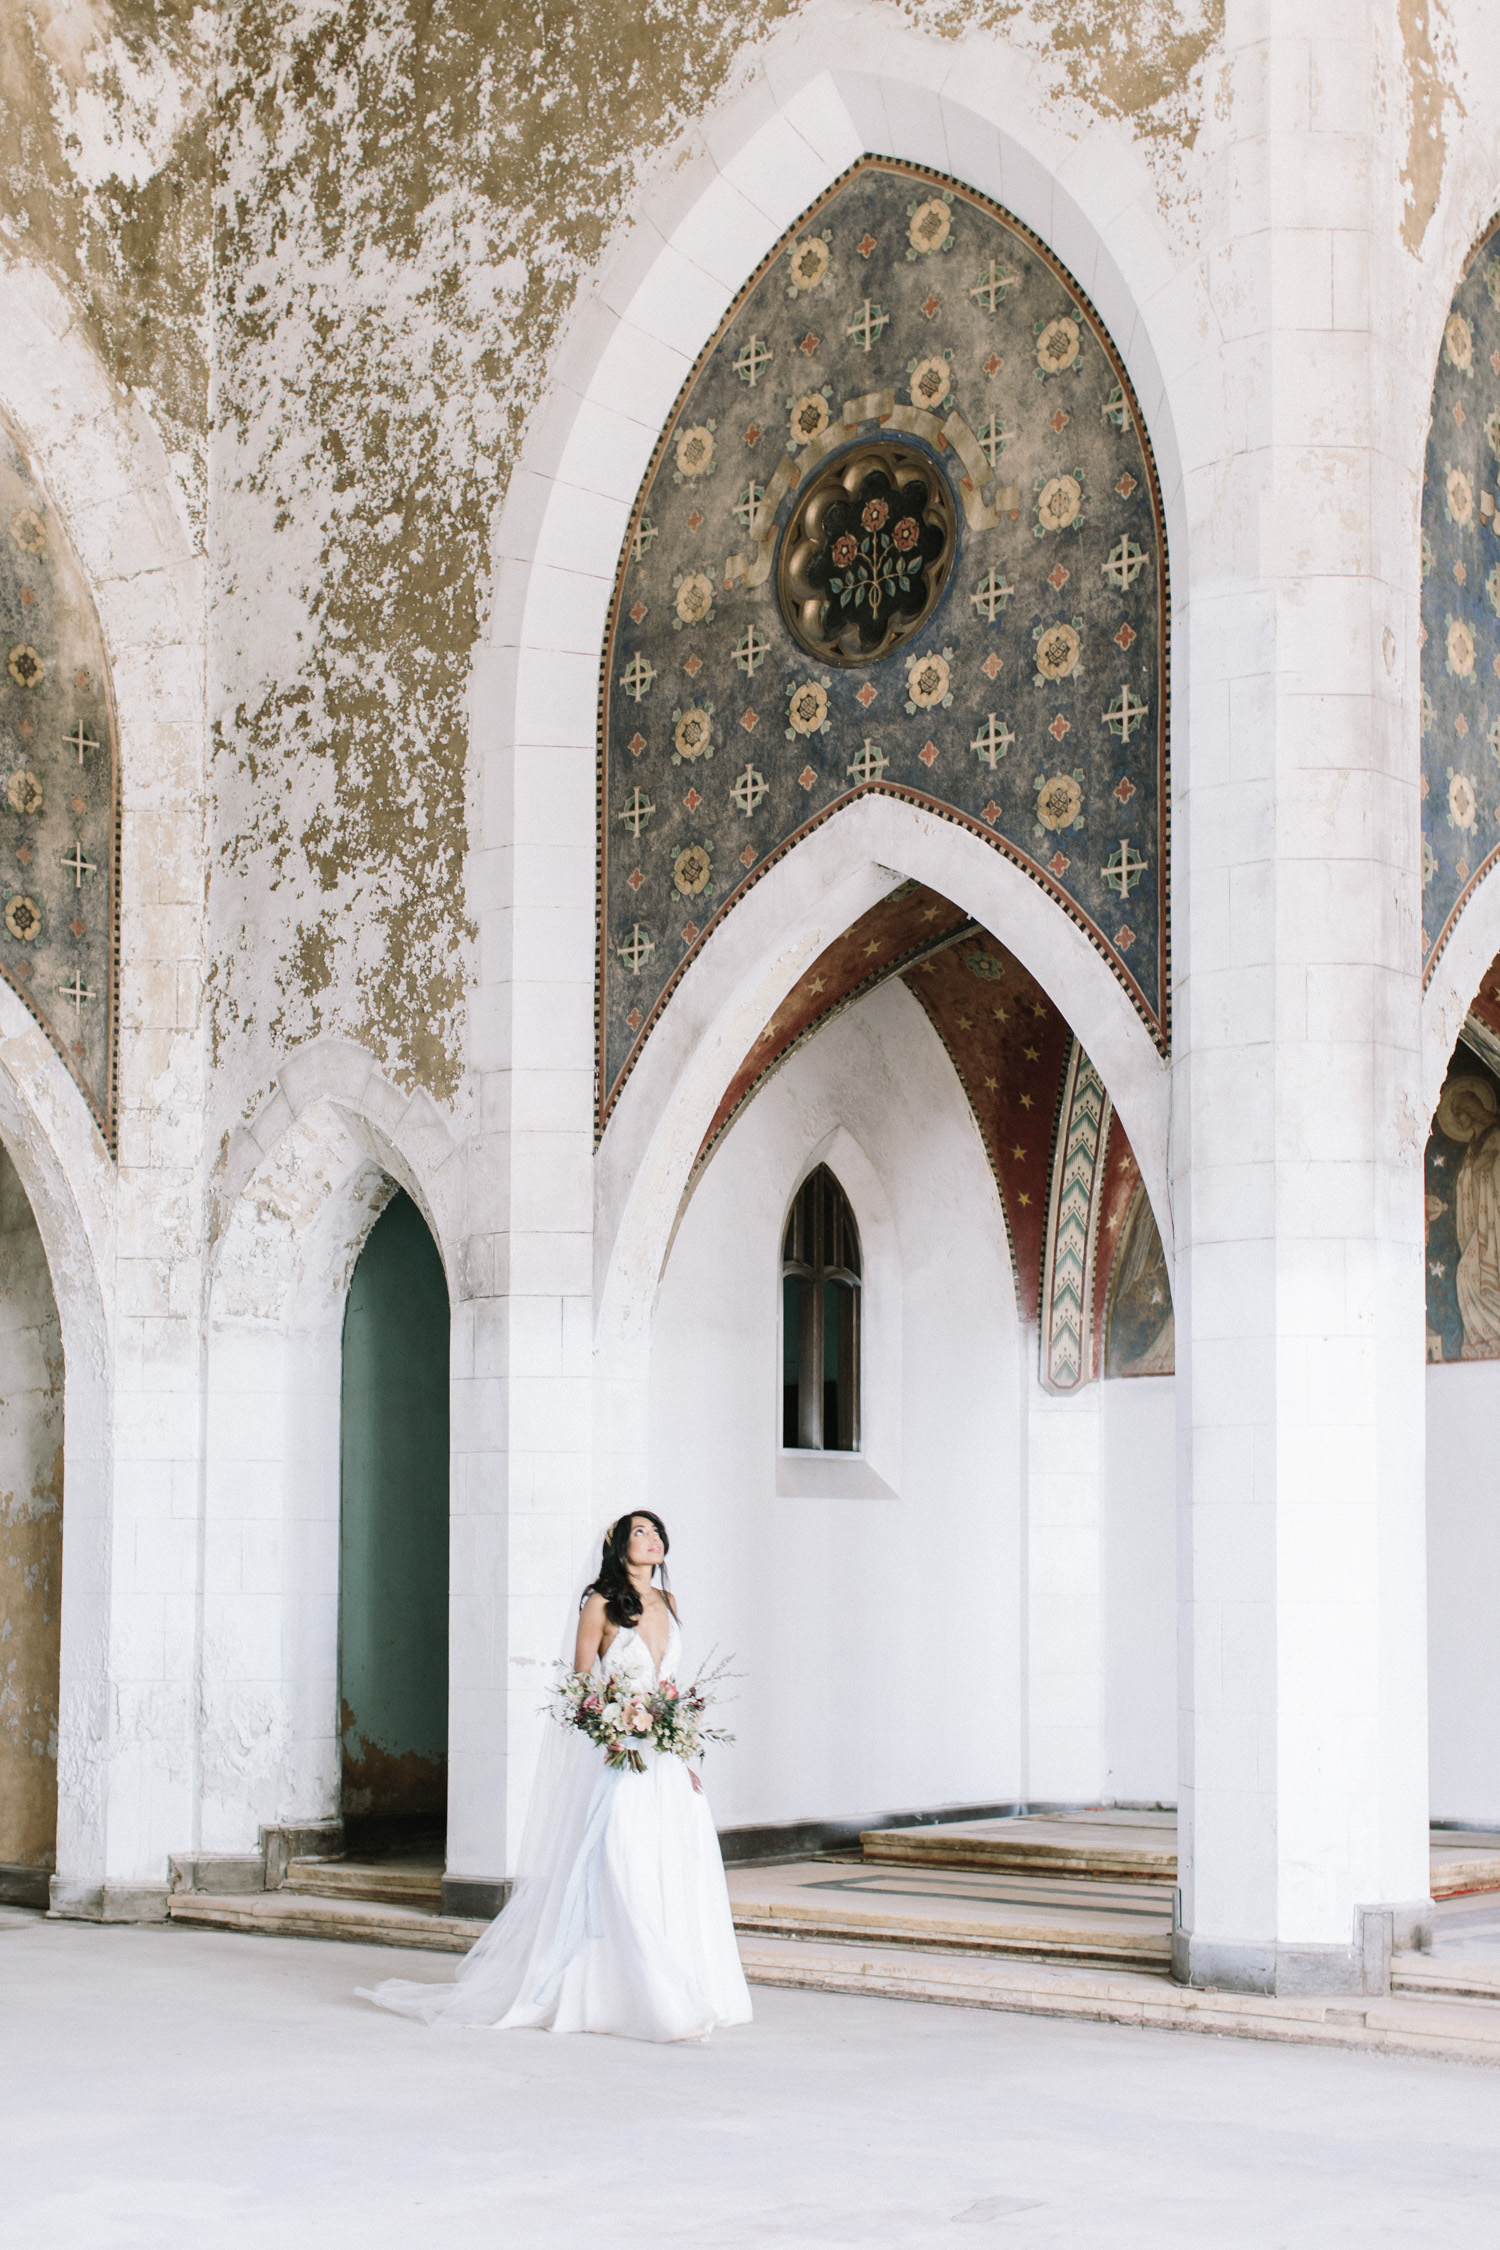 An adventurous bride explores the abandoned cathedral location of her destination wedding in Greece